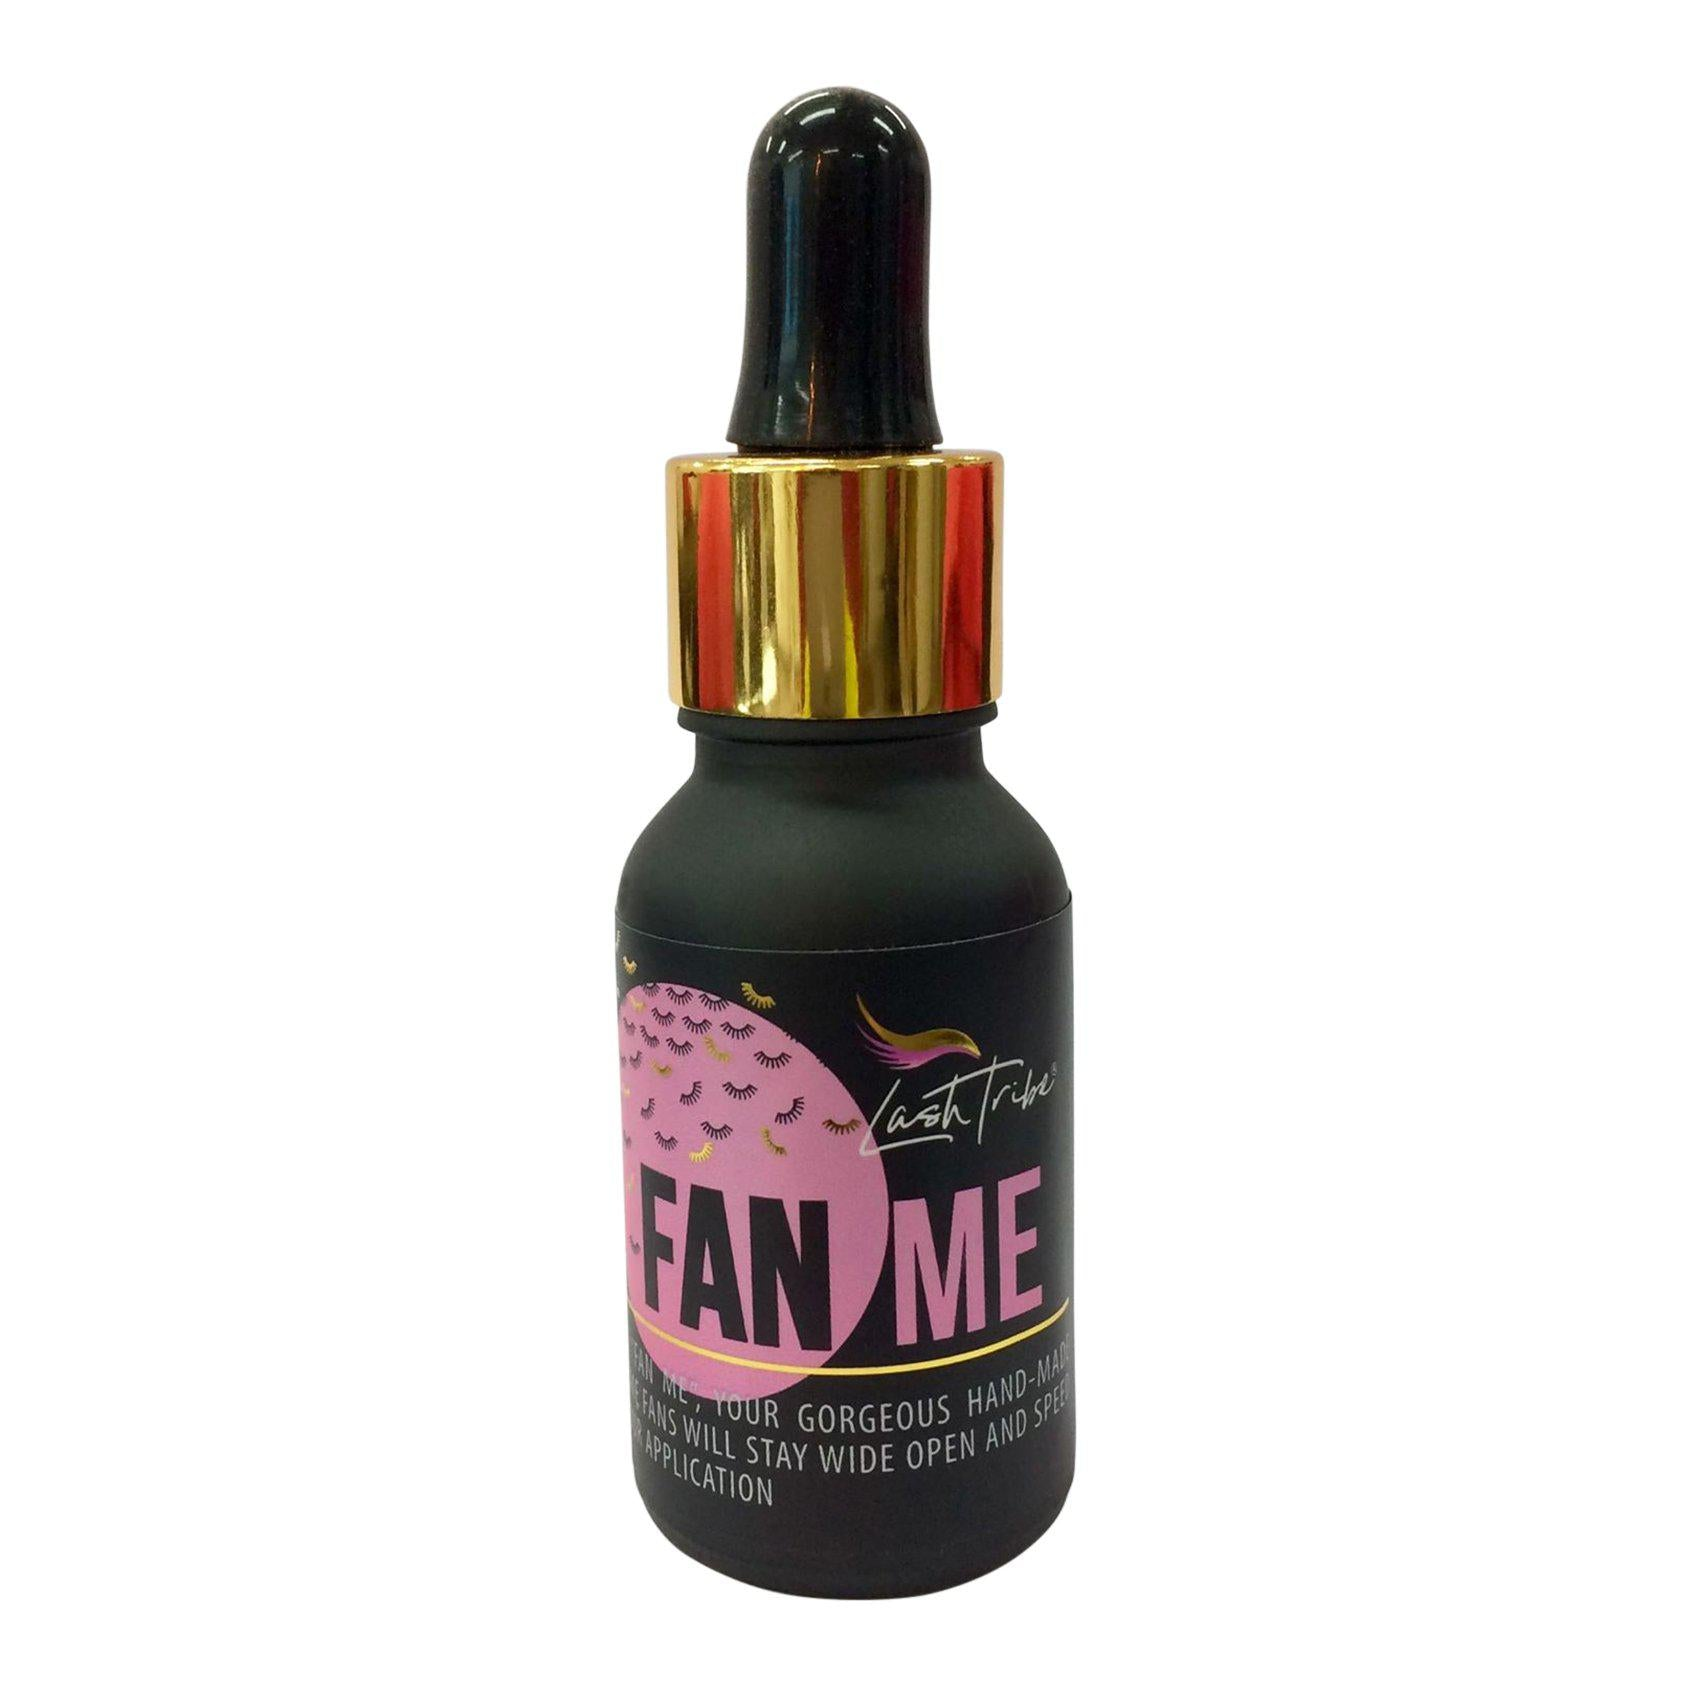 Fan me - NEW !!!-Fan Me-Lash Tribe